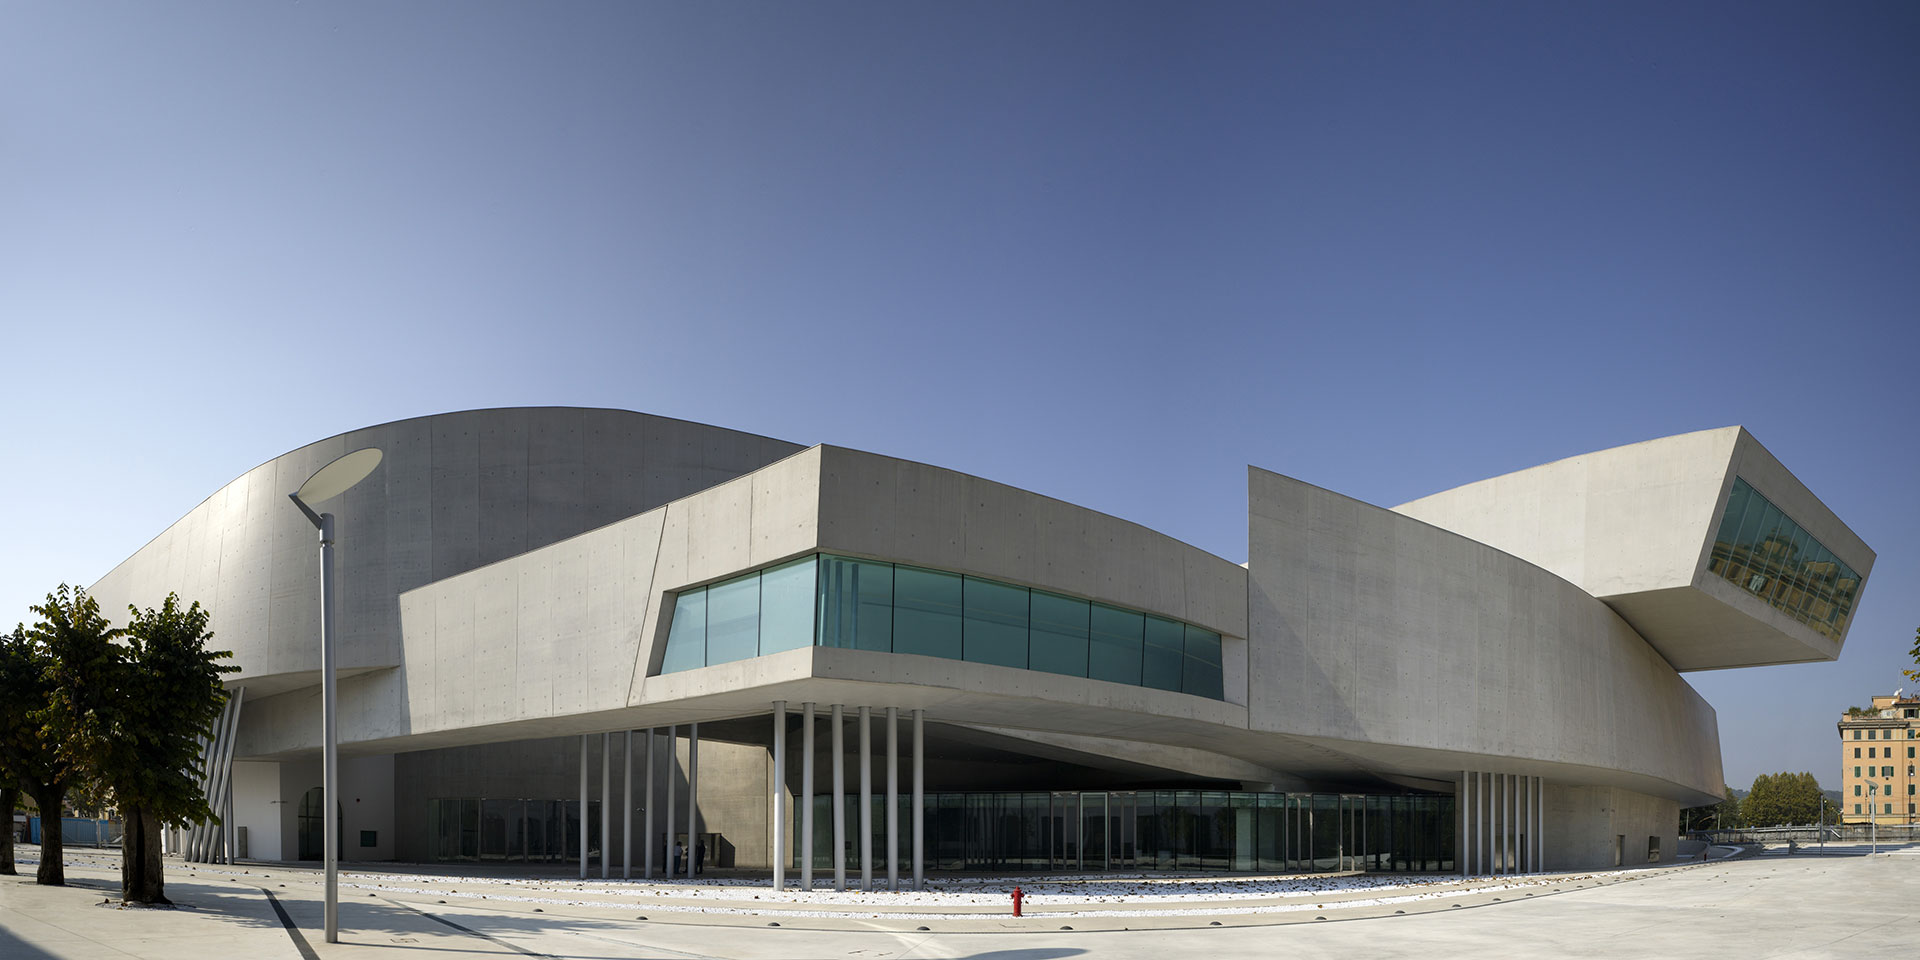 The MAXXI Museum is housed in Zaha Hadid's concrete undulation in the Flaminio neighborhood. (Photo: Getty Images)